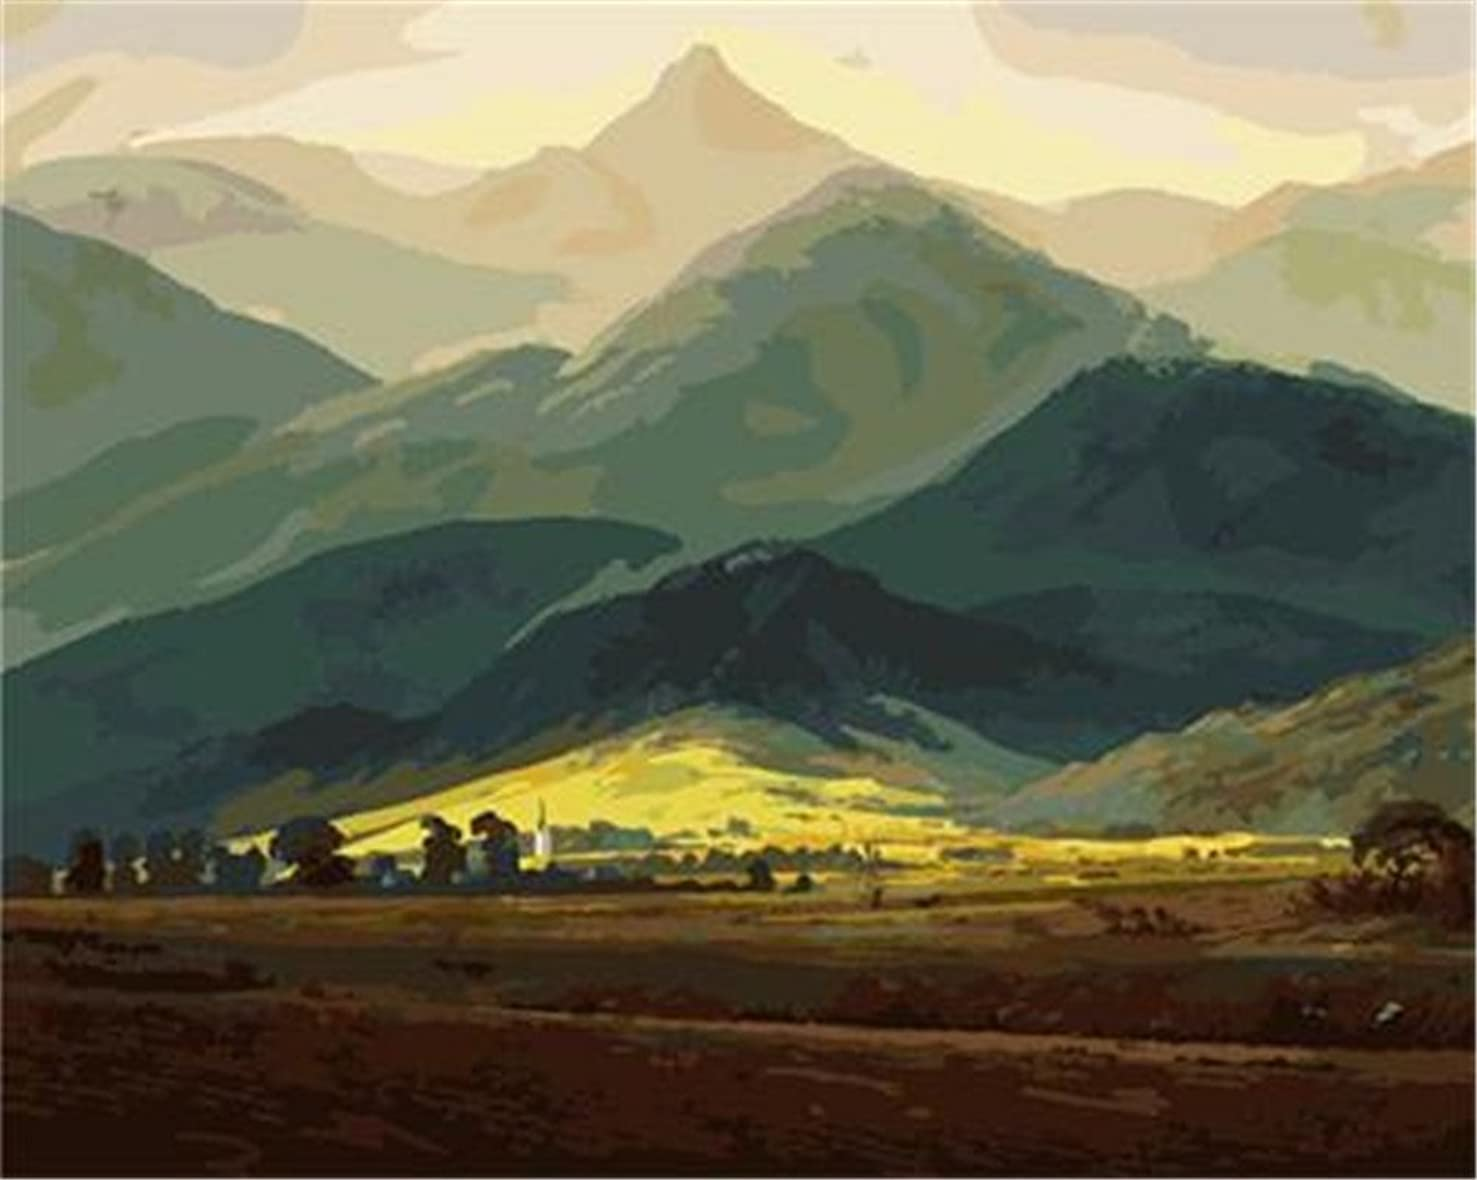 CaptainCrafts New Paint by Number Kits - Giant Mountains 16x20 inch - DIY Painting by Numbers for Adults Beginner Kids (Frameless)